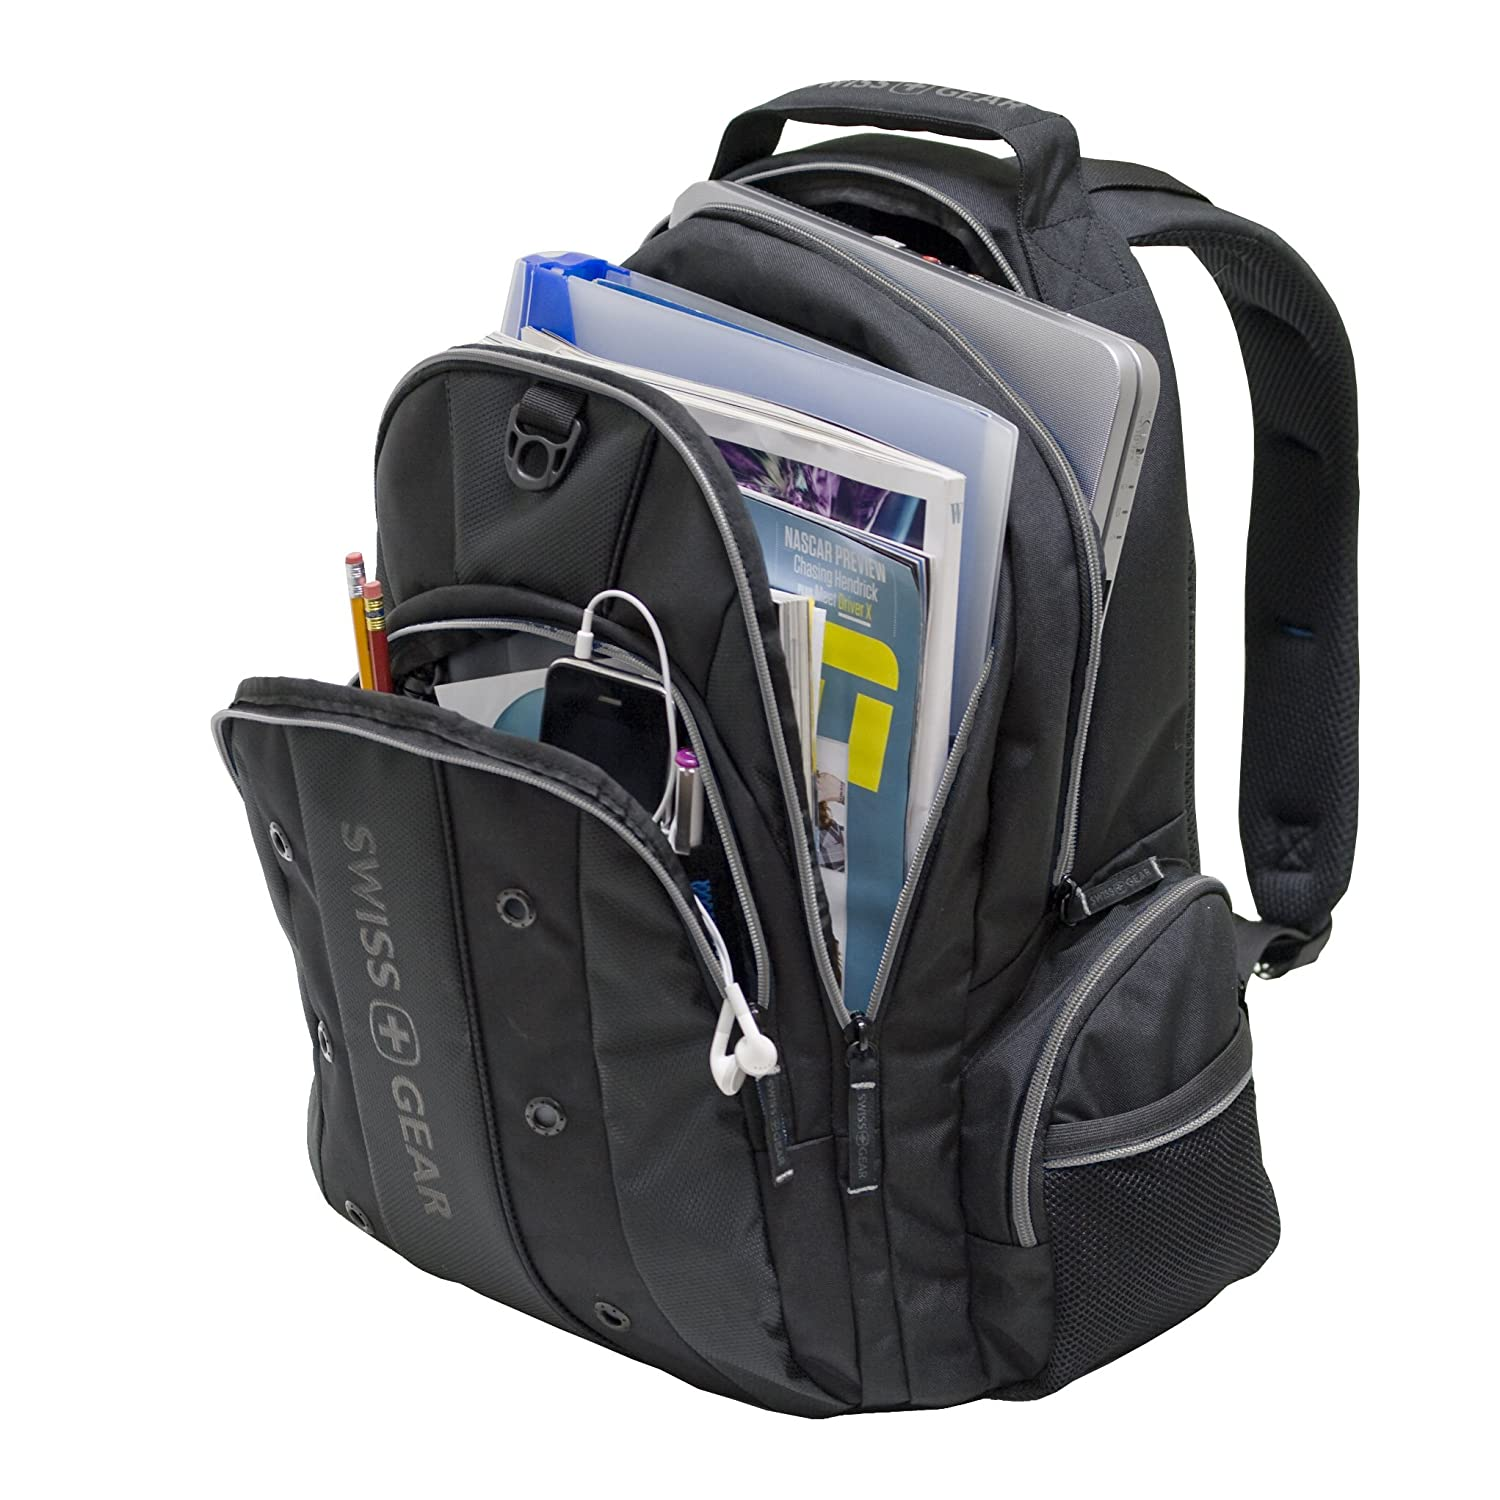 swiss gear lightweight backpack for laptops and